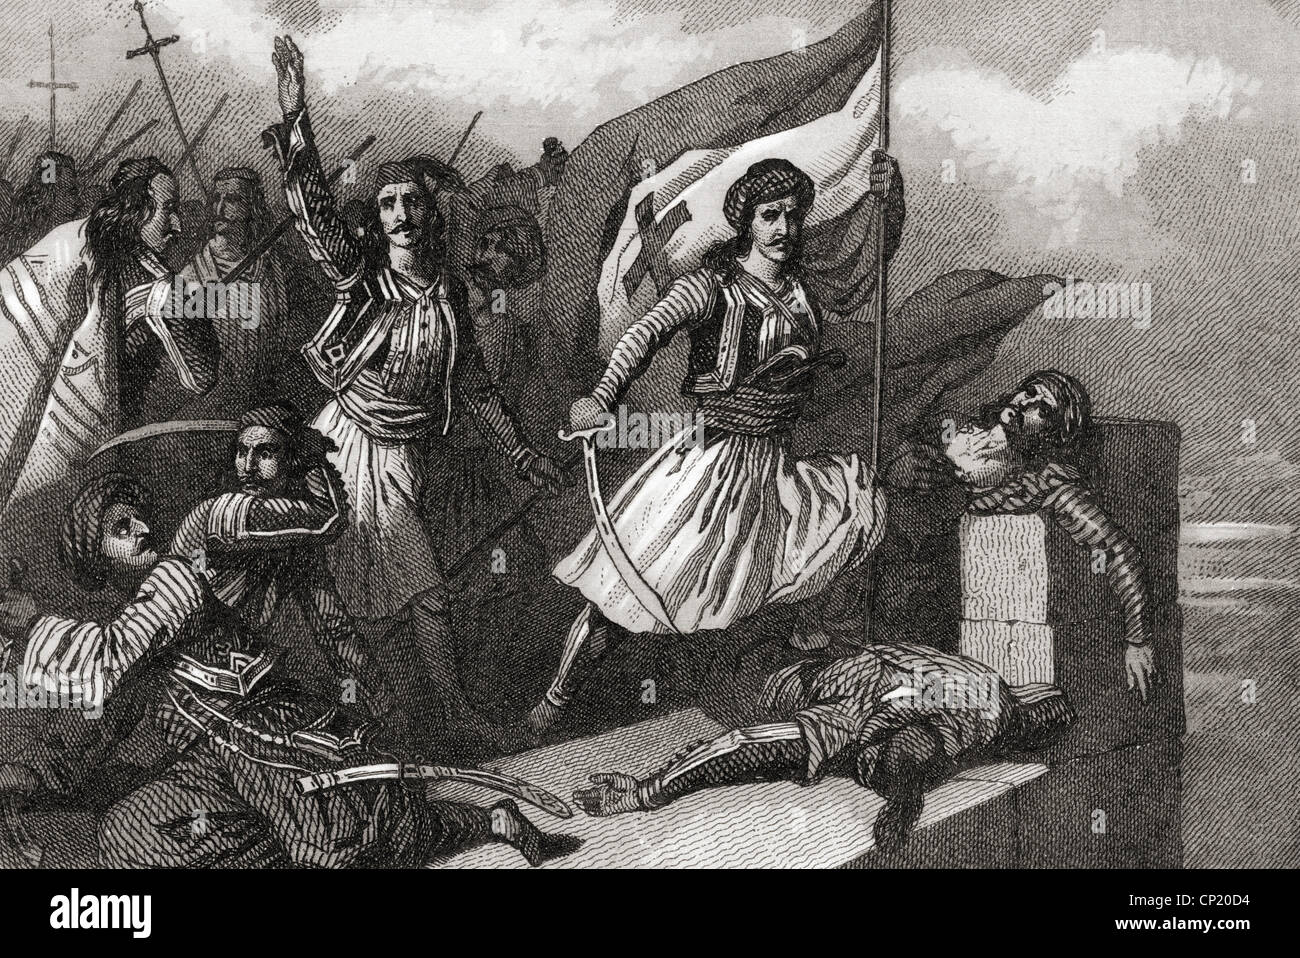 events, Greek War of Independence 1821 - 1829, the Greeks rising the flag with the cross, Easter 1821, steel engraving - Stock Image